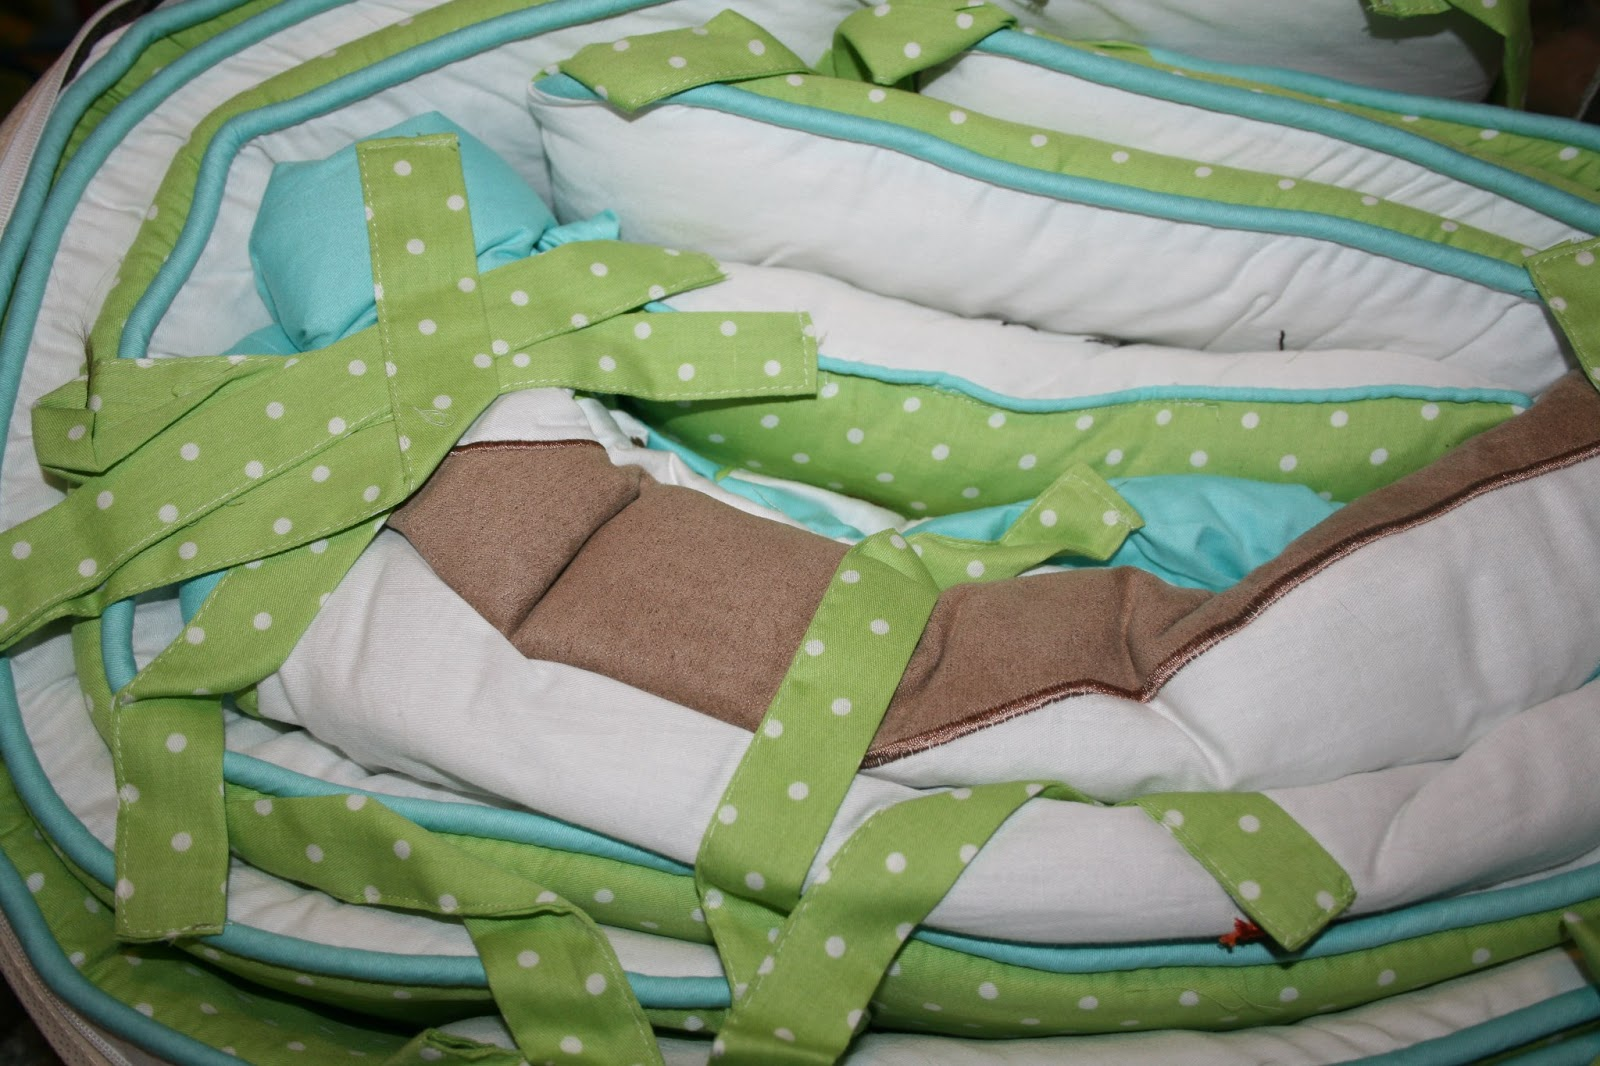 New The pc Turquoise and Lime Hooty Baby Bedding Collection by Sweet Jojo Designs will transform your nursery into a woodsy wonderland